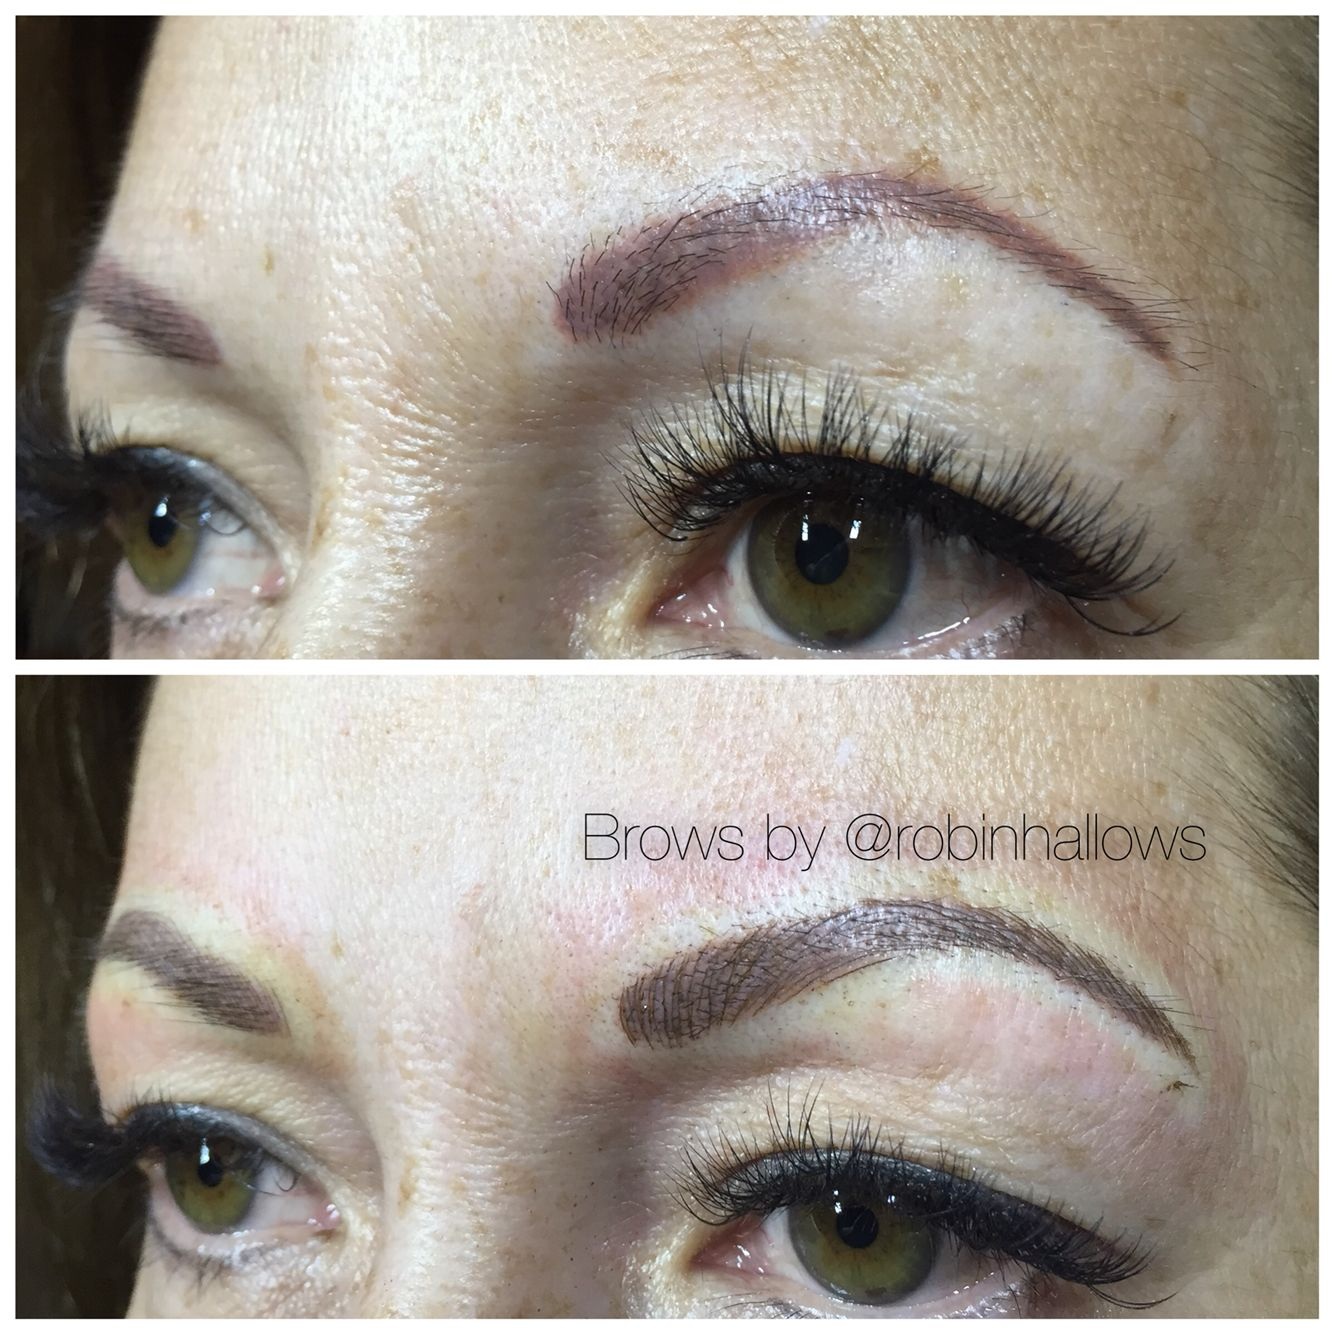 Eyebrow Tattoo Before And After: Microblading Over Old Tattoo Before And After...info On My